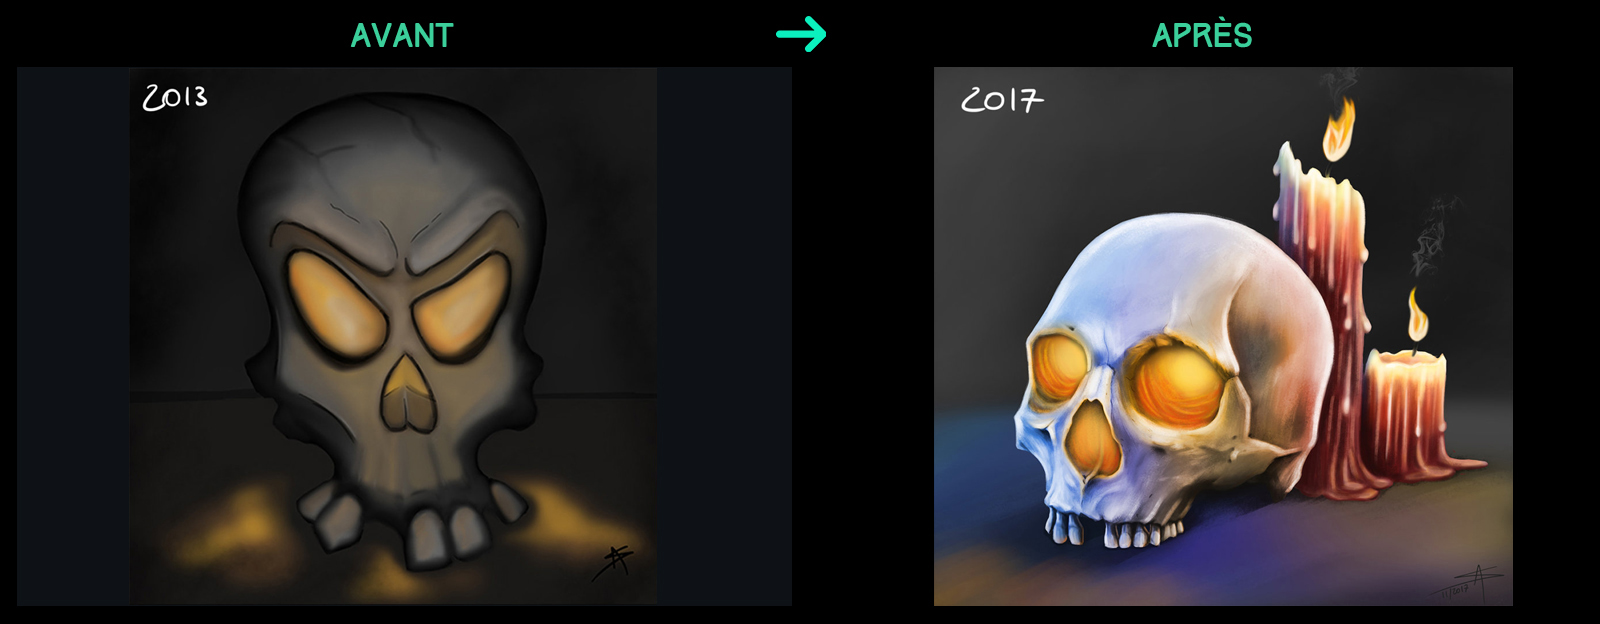 progression digital painting avant après